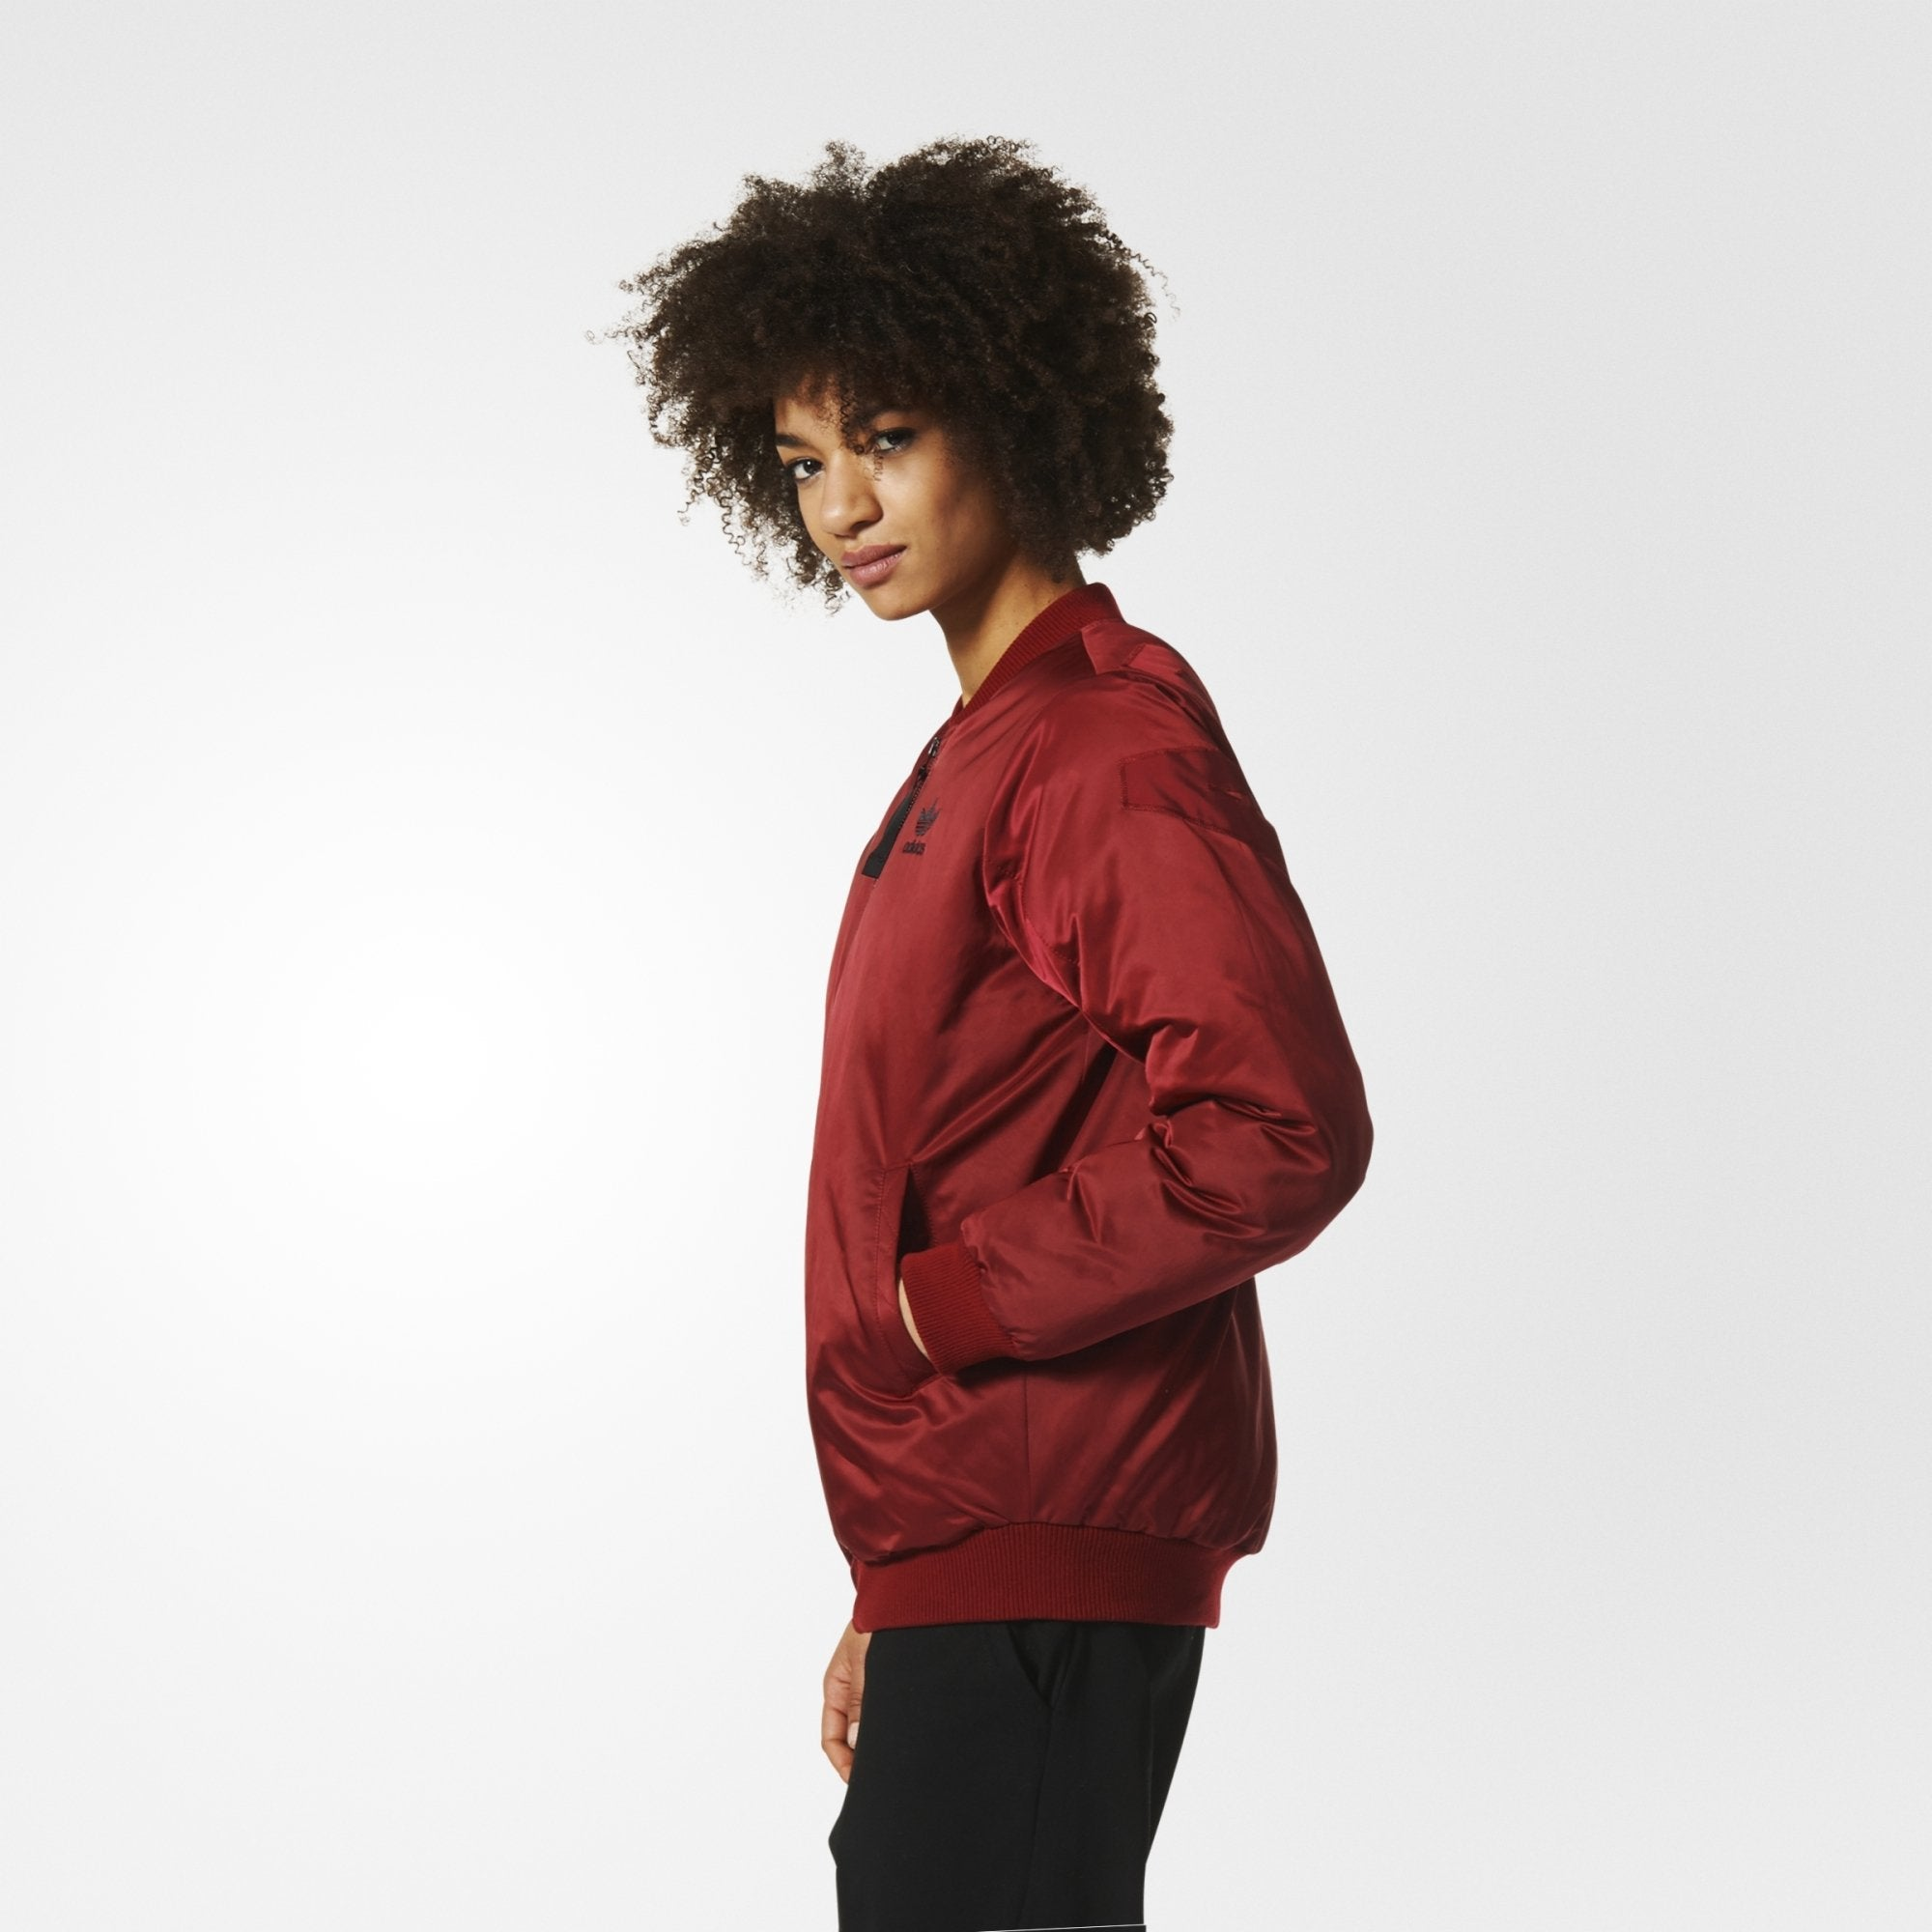 c4a4d2c5565d Women s adidas Originals Mid Bomber Padded Jacket Collegiate Burgundy. 1